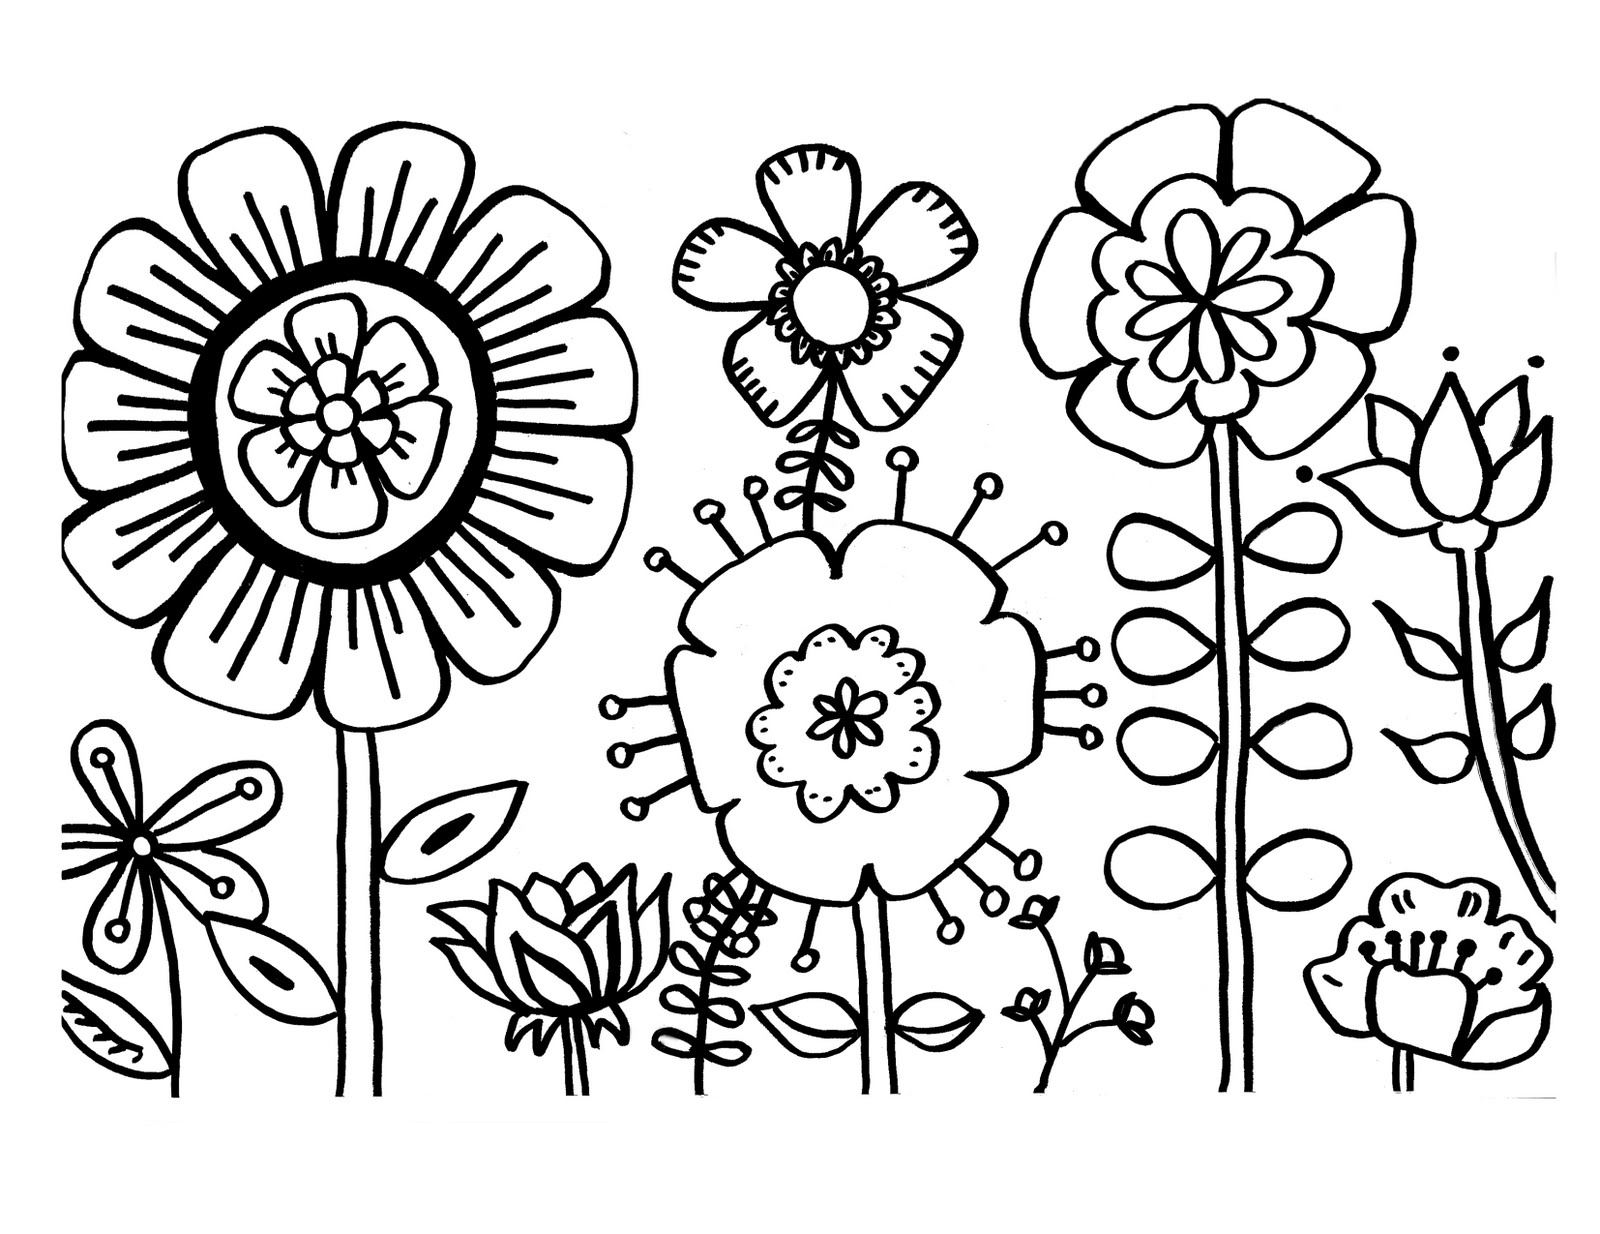 Flower Coloring Pages Printable Free Printable Flower Coloring Pages For Kids  Best Coloring